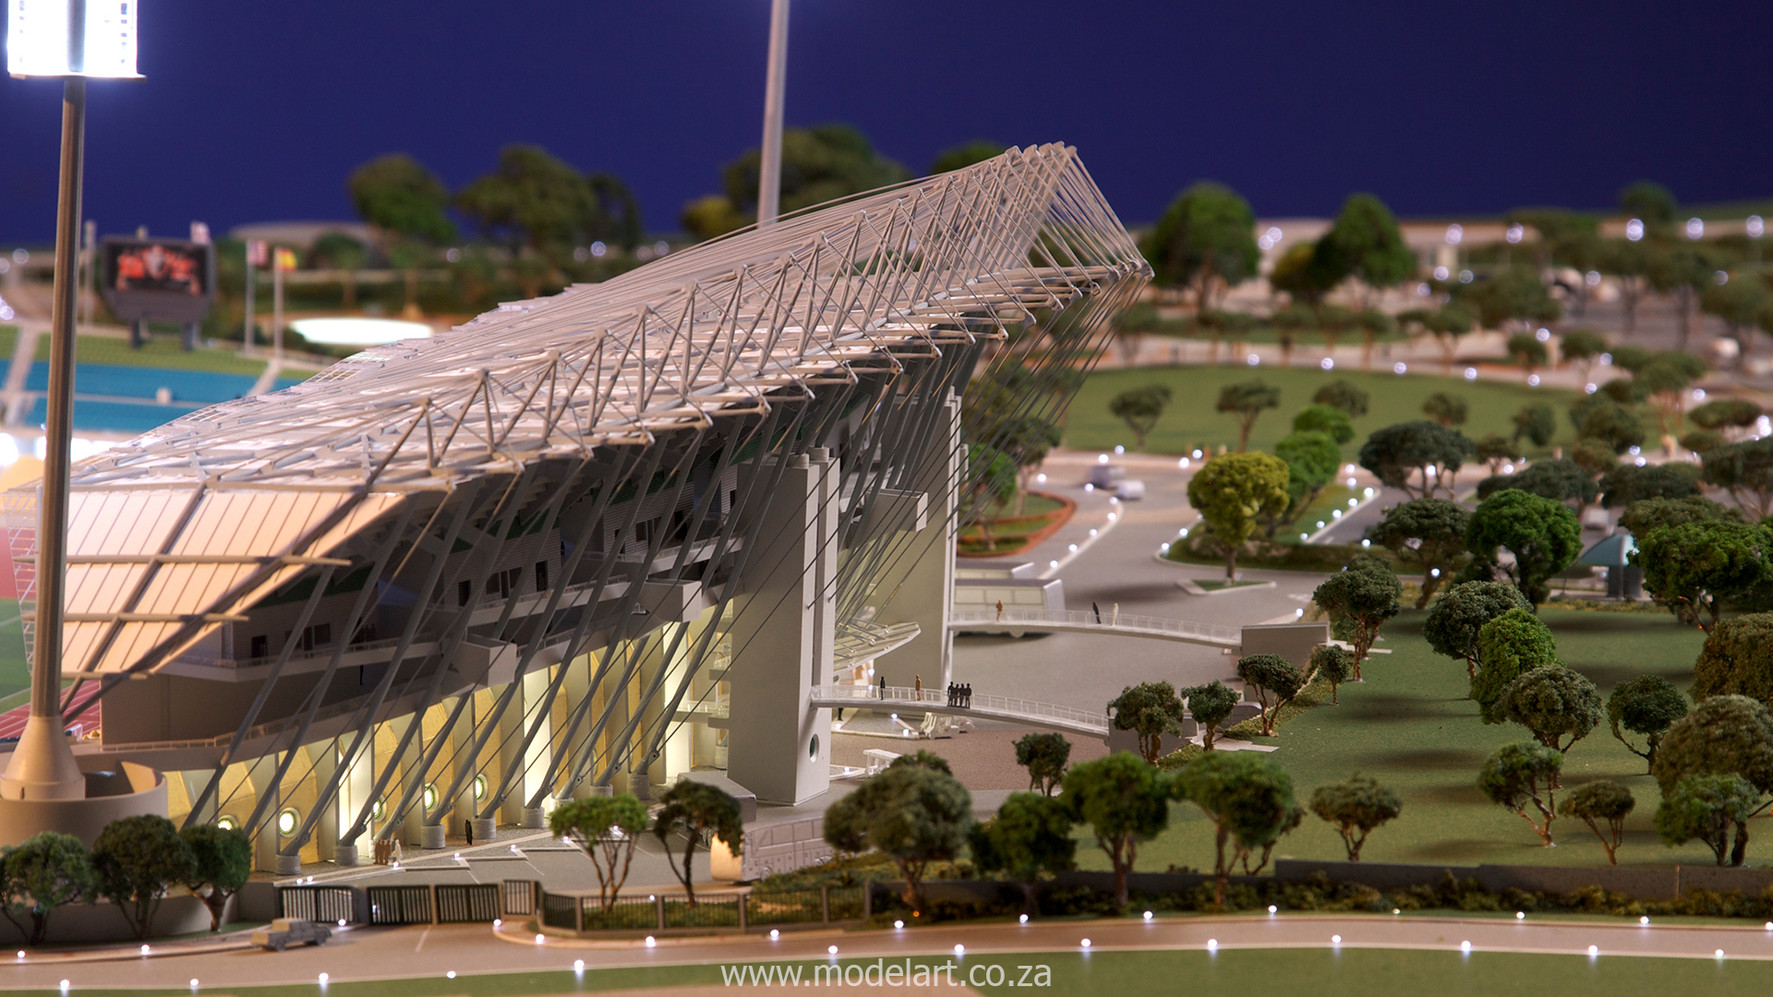 Architectural-Scale-Model-Sports Facilities-Royal Bafokeng Stadium-4